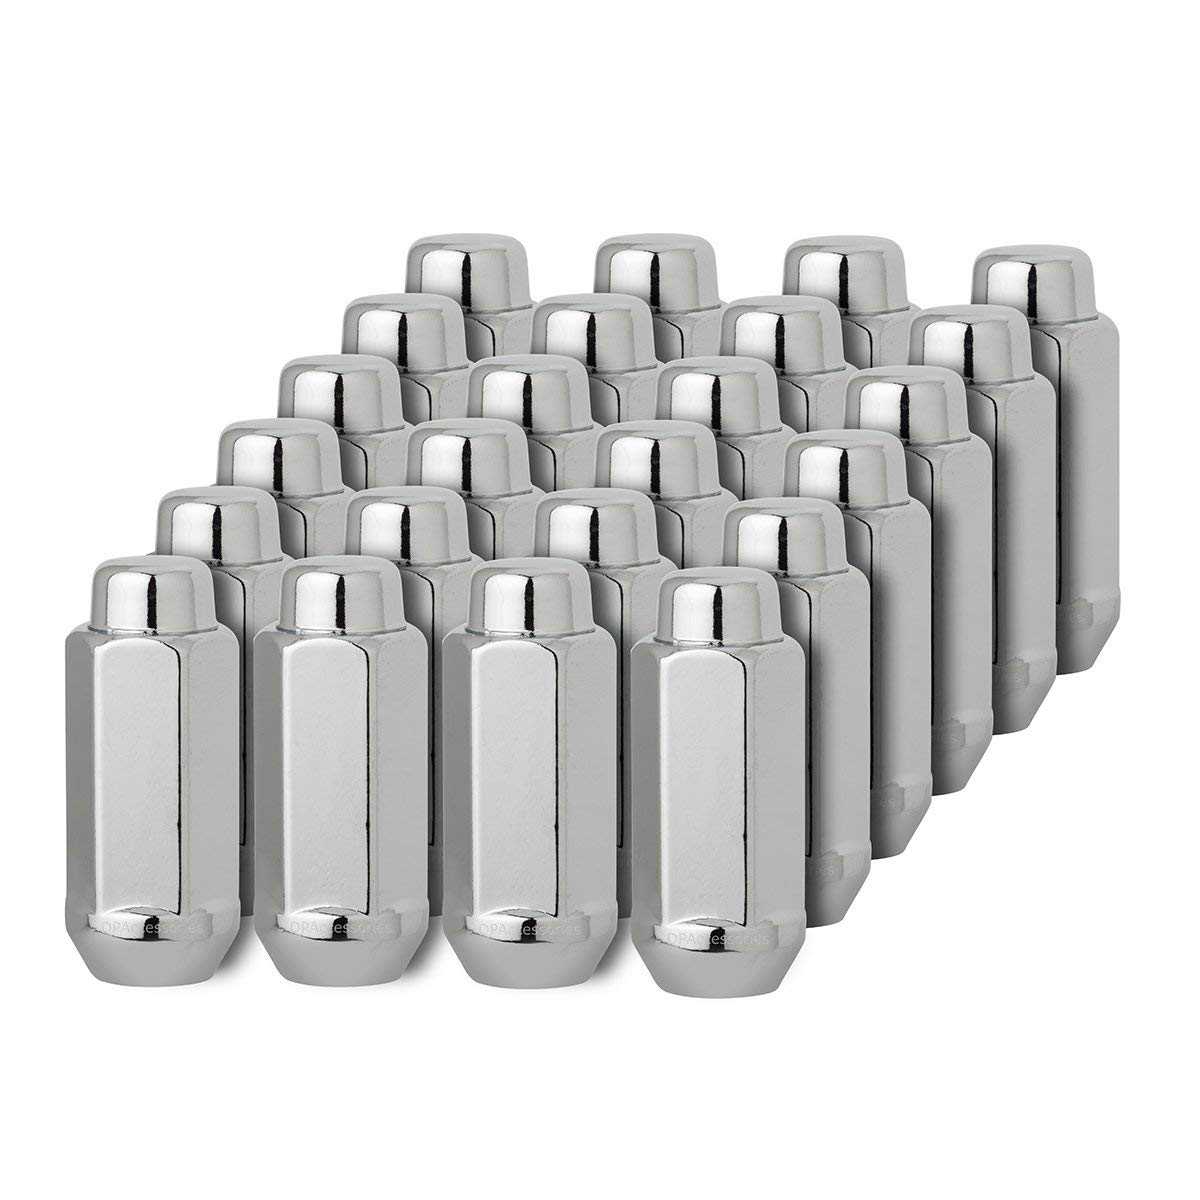 for 8Lug Wheels Precision European Motorwerks Conical Cone Taper Acorn Seat Closed End Long Extended Installs with 19mm or 3//4 Hex Socket 9//16-18 Thread Size 32pc Silver Chrome Bulge Lug Nuts 1.8 Length